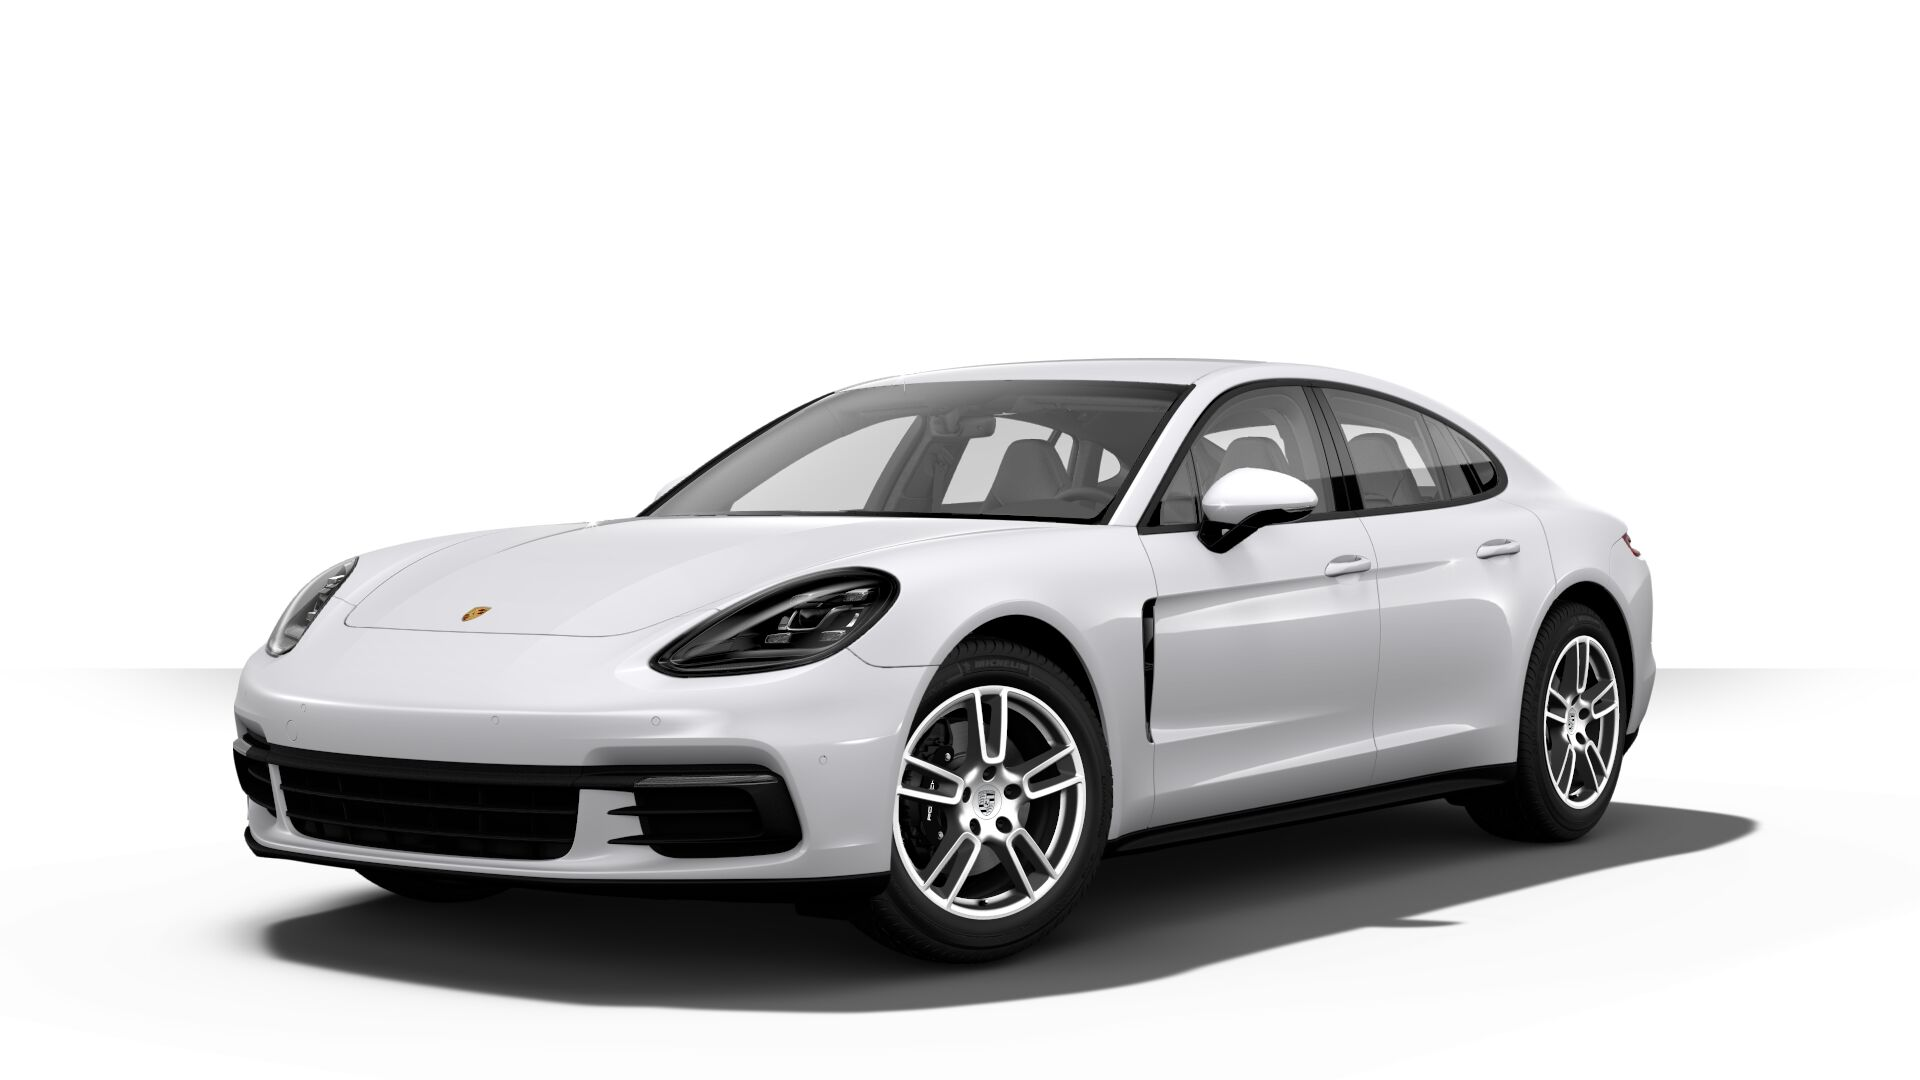 2019 Porsche Panamera in carrera white